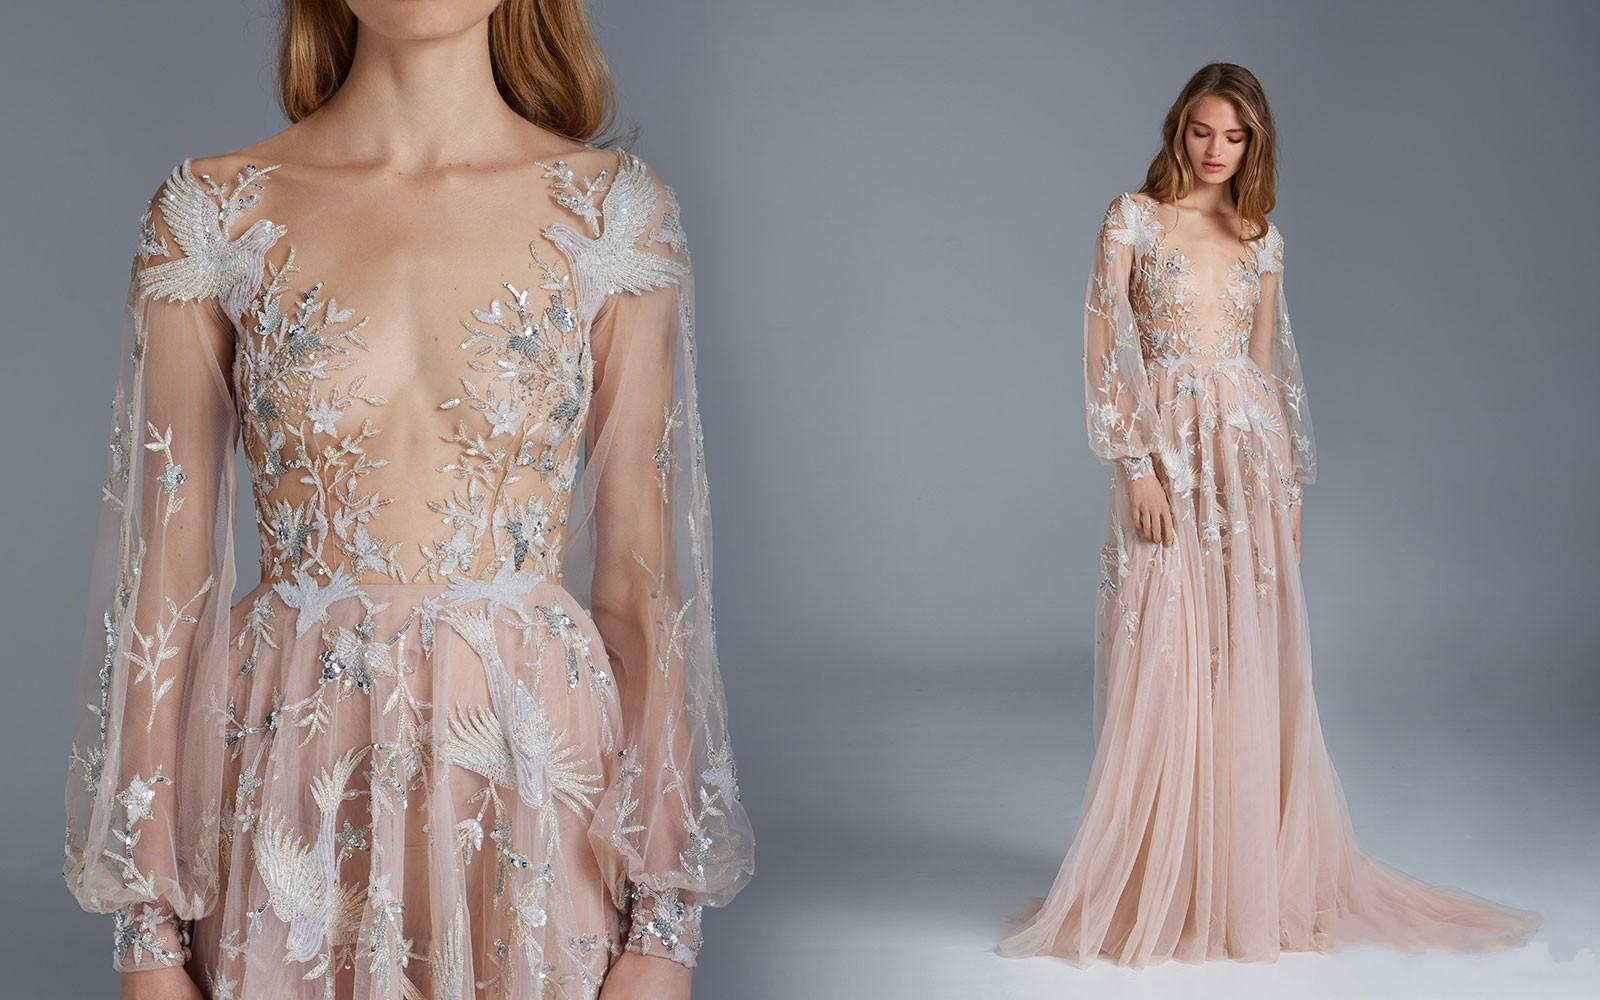 8026c34dd80b1 Paolo Sebastian 2015 Prom Dresses Sexy See Through Long Sleeves A Line Tulle  Flower Bird Appliques Formal Dress Celebrity Dress For Red Carp Dylan Prom  ...